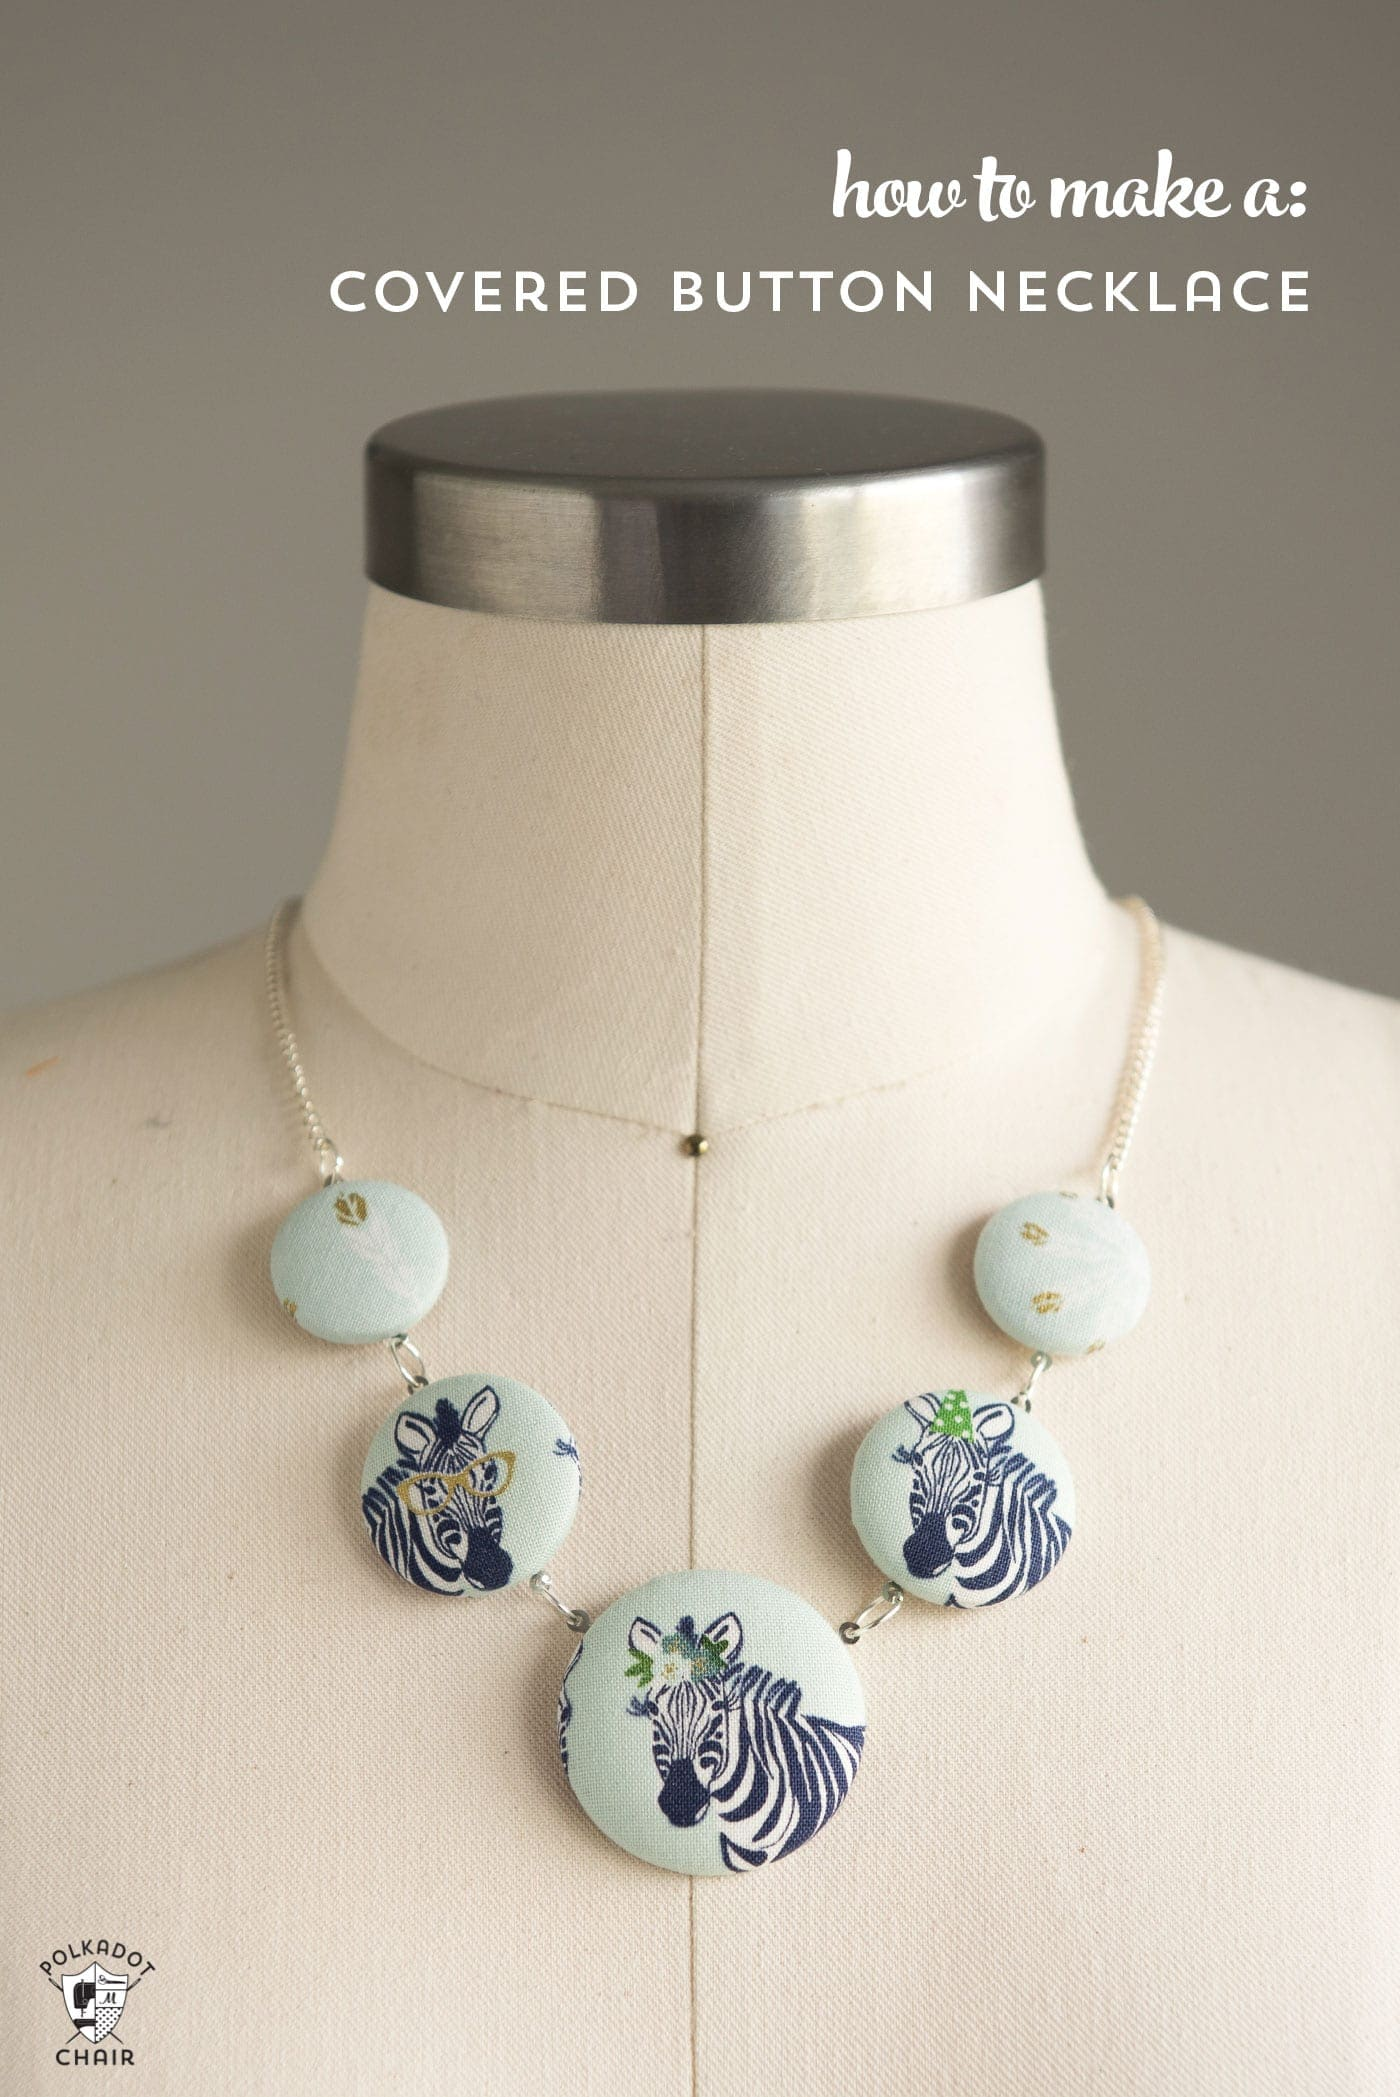 Make My Day >> Fabric Covered Button Necklace Tutorial - The Polka Dot Chair